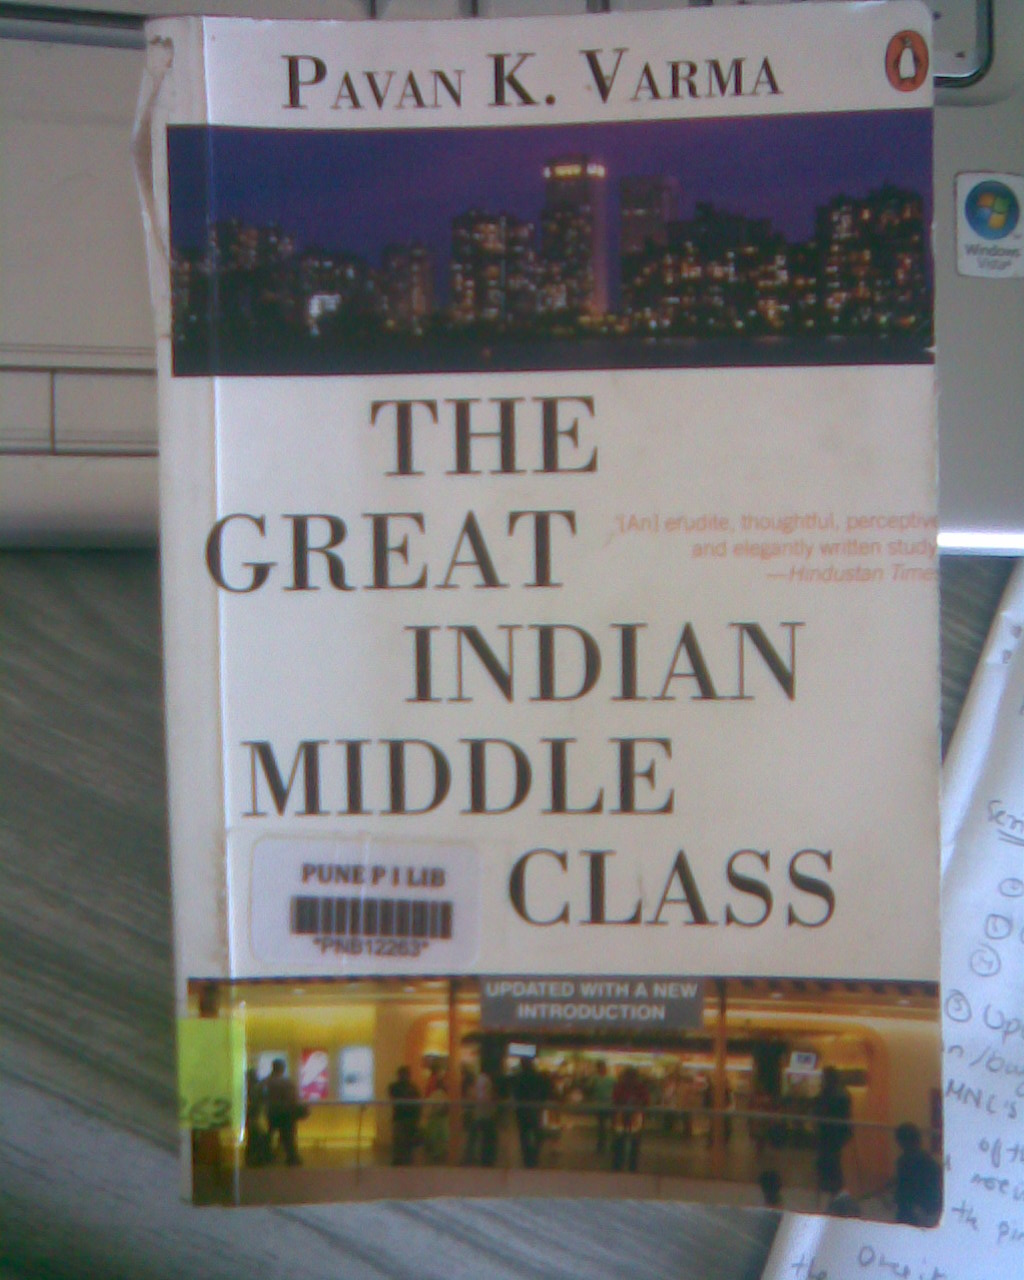 the indian middle class India's middle class population to rise, key driver for asia's rise by 2050 india's middle class  70% of the indian population could be middle class within 15.